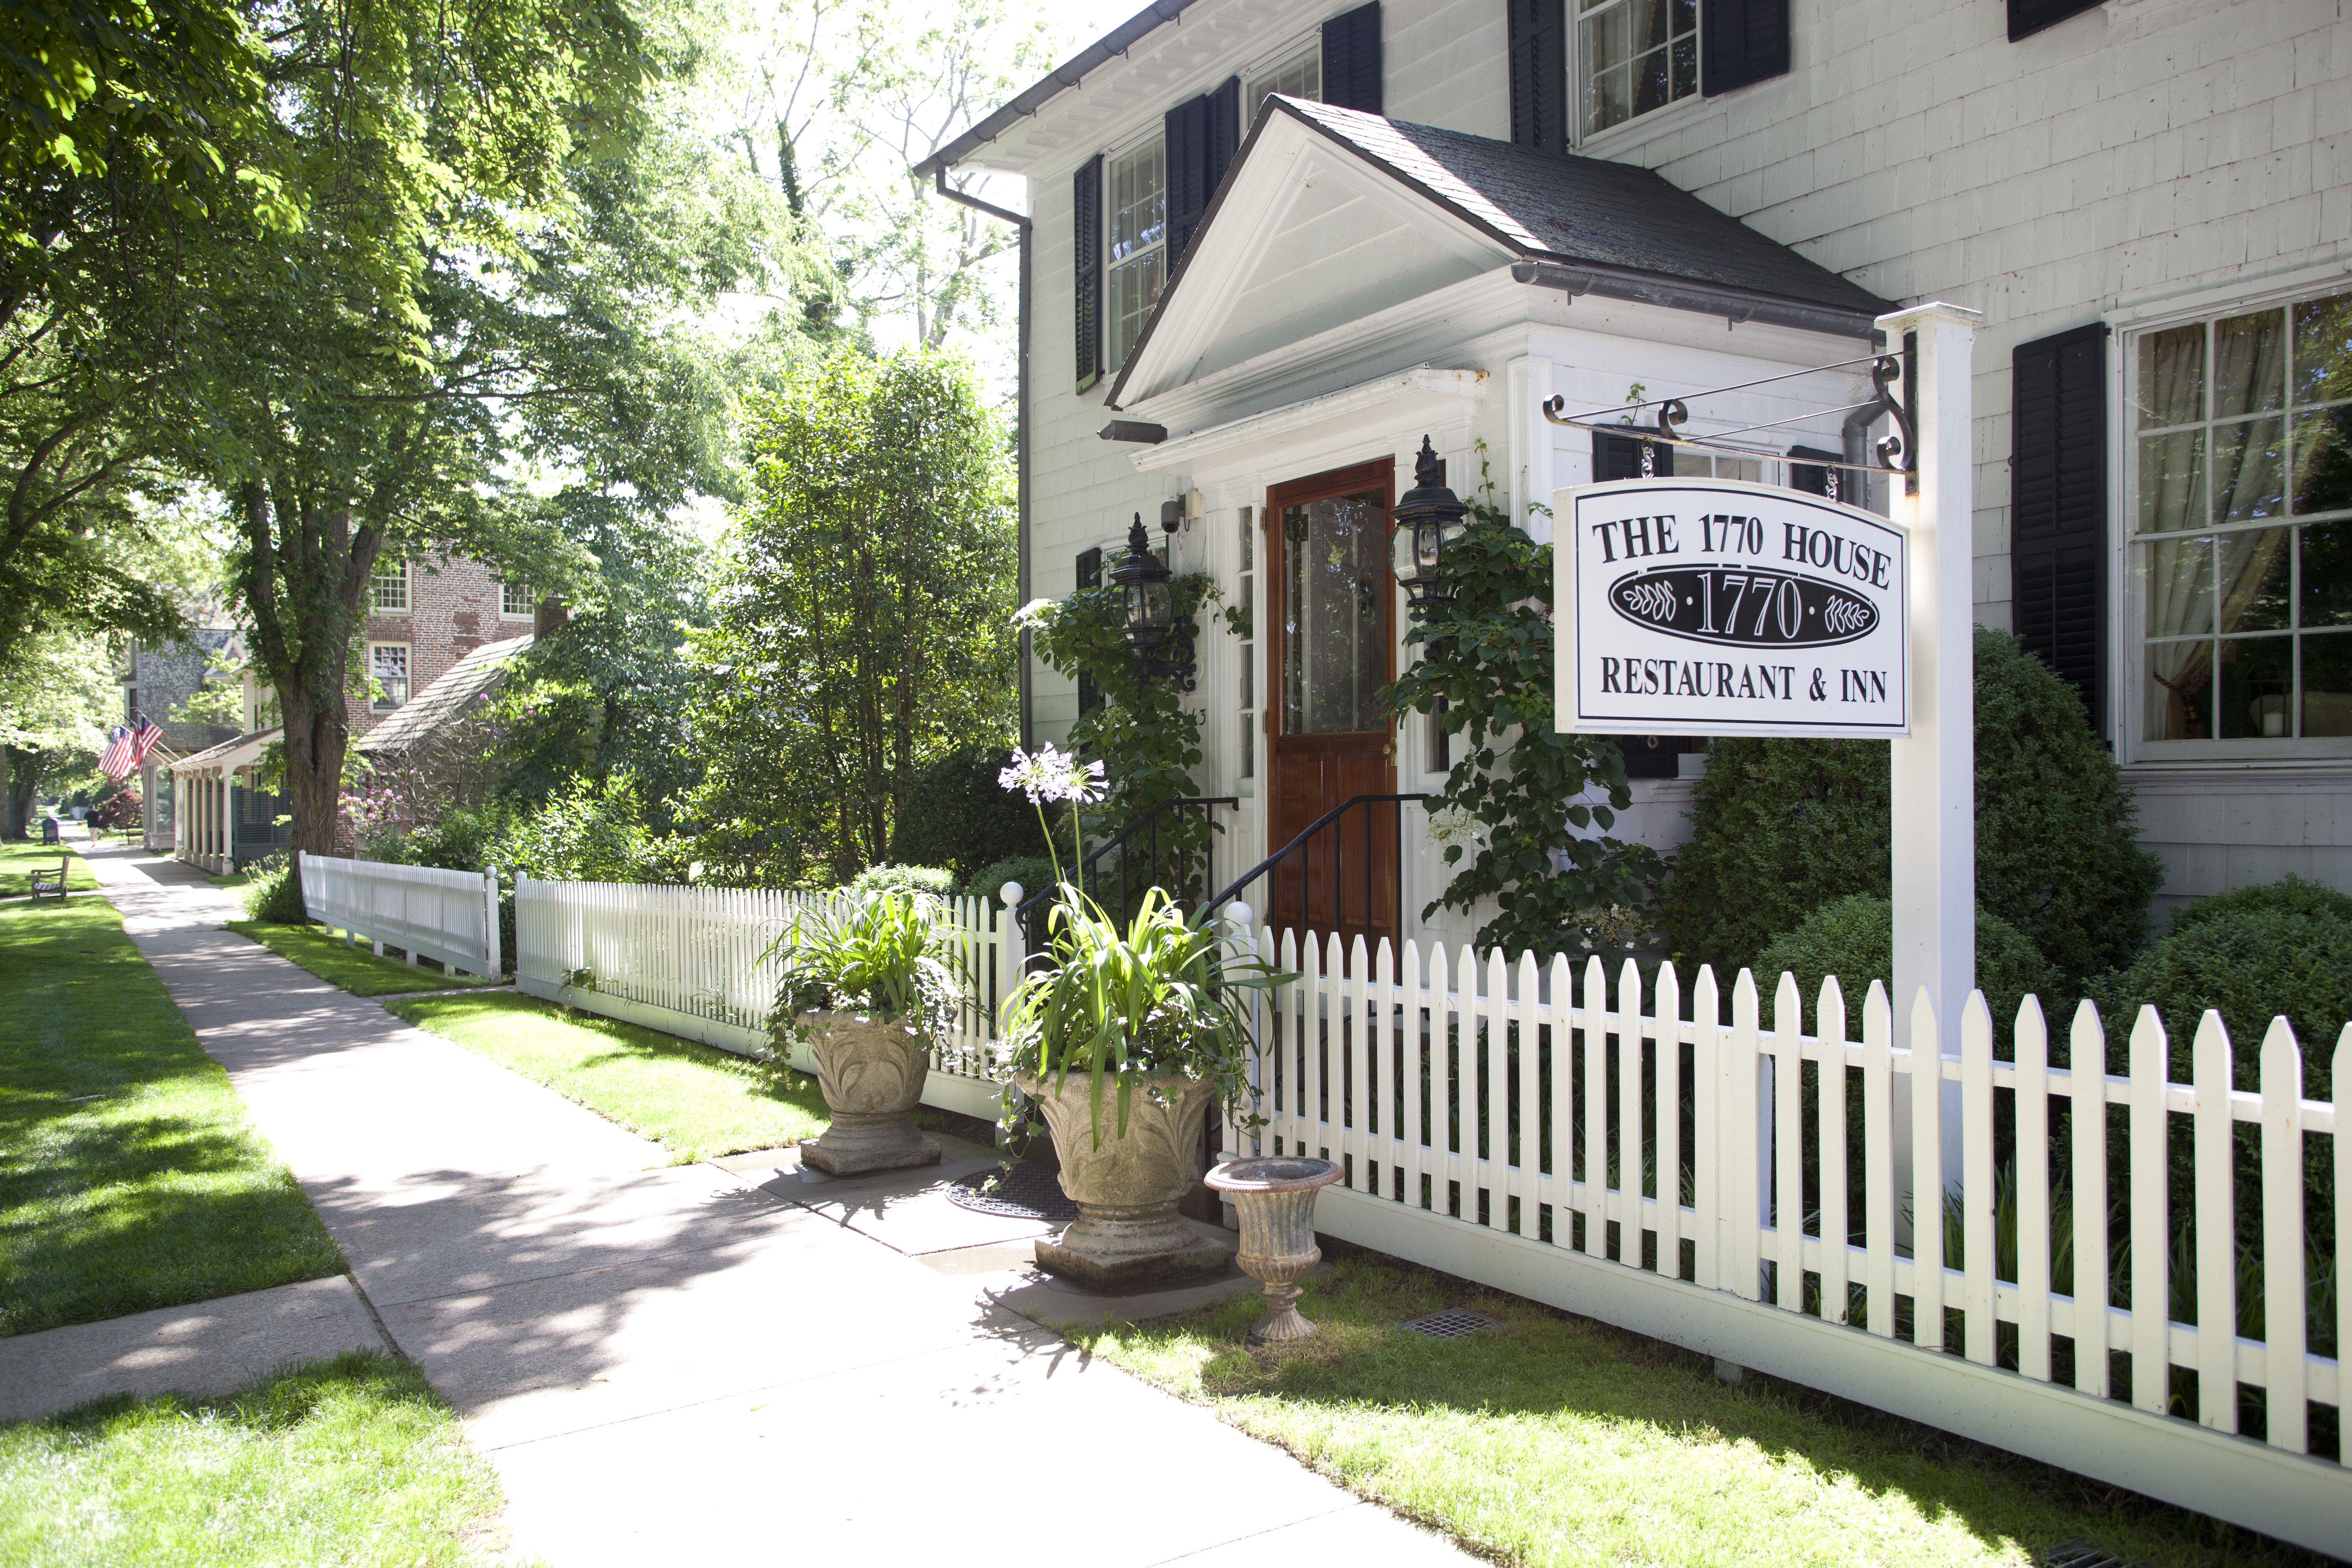 Ina Garten East Hampton Home 1770 house has a wonderful restaurant; i love their meatloaf